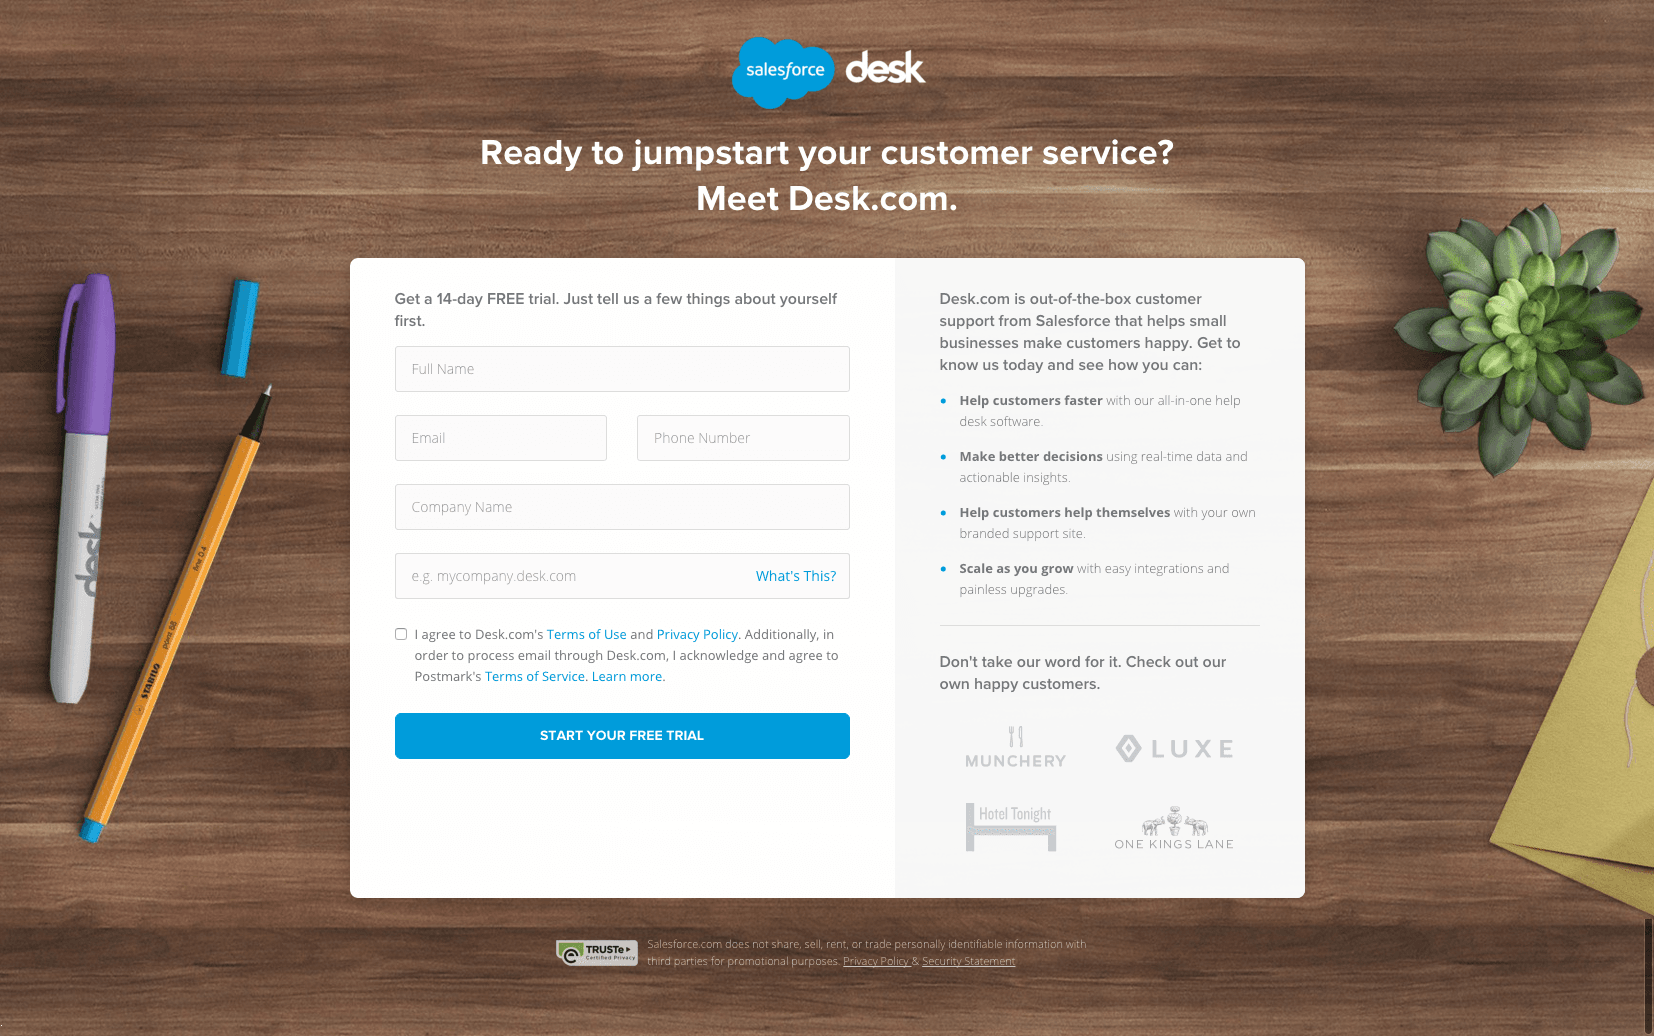 This picture shows marketers how Salesforce uses a well-designed landing page to generate free trials for its Desk.com service.